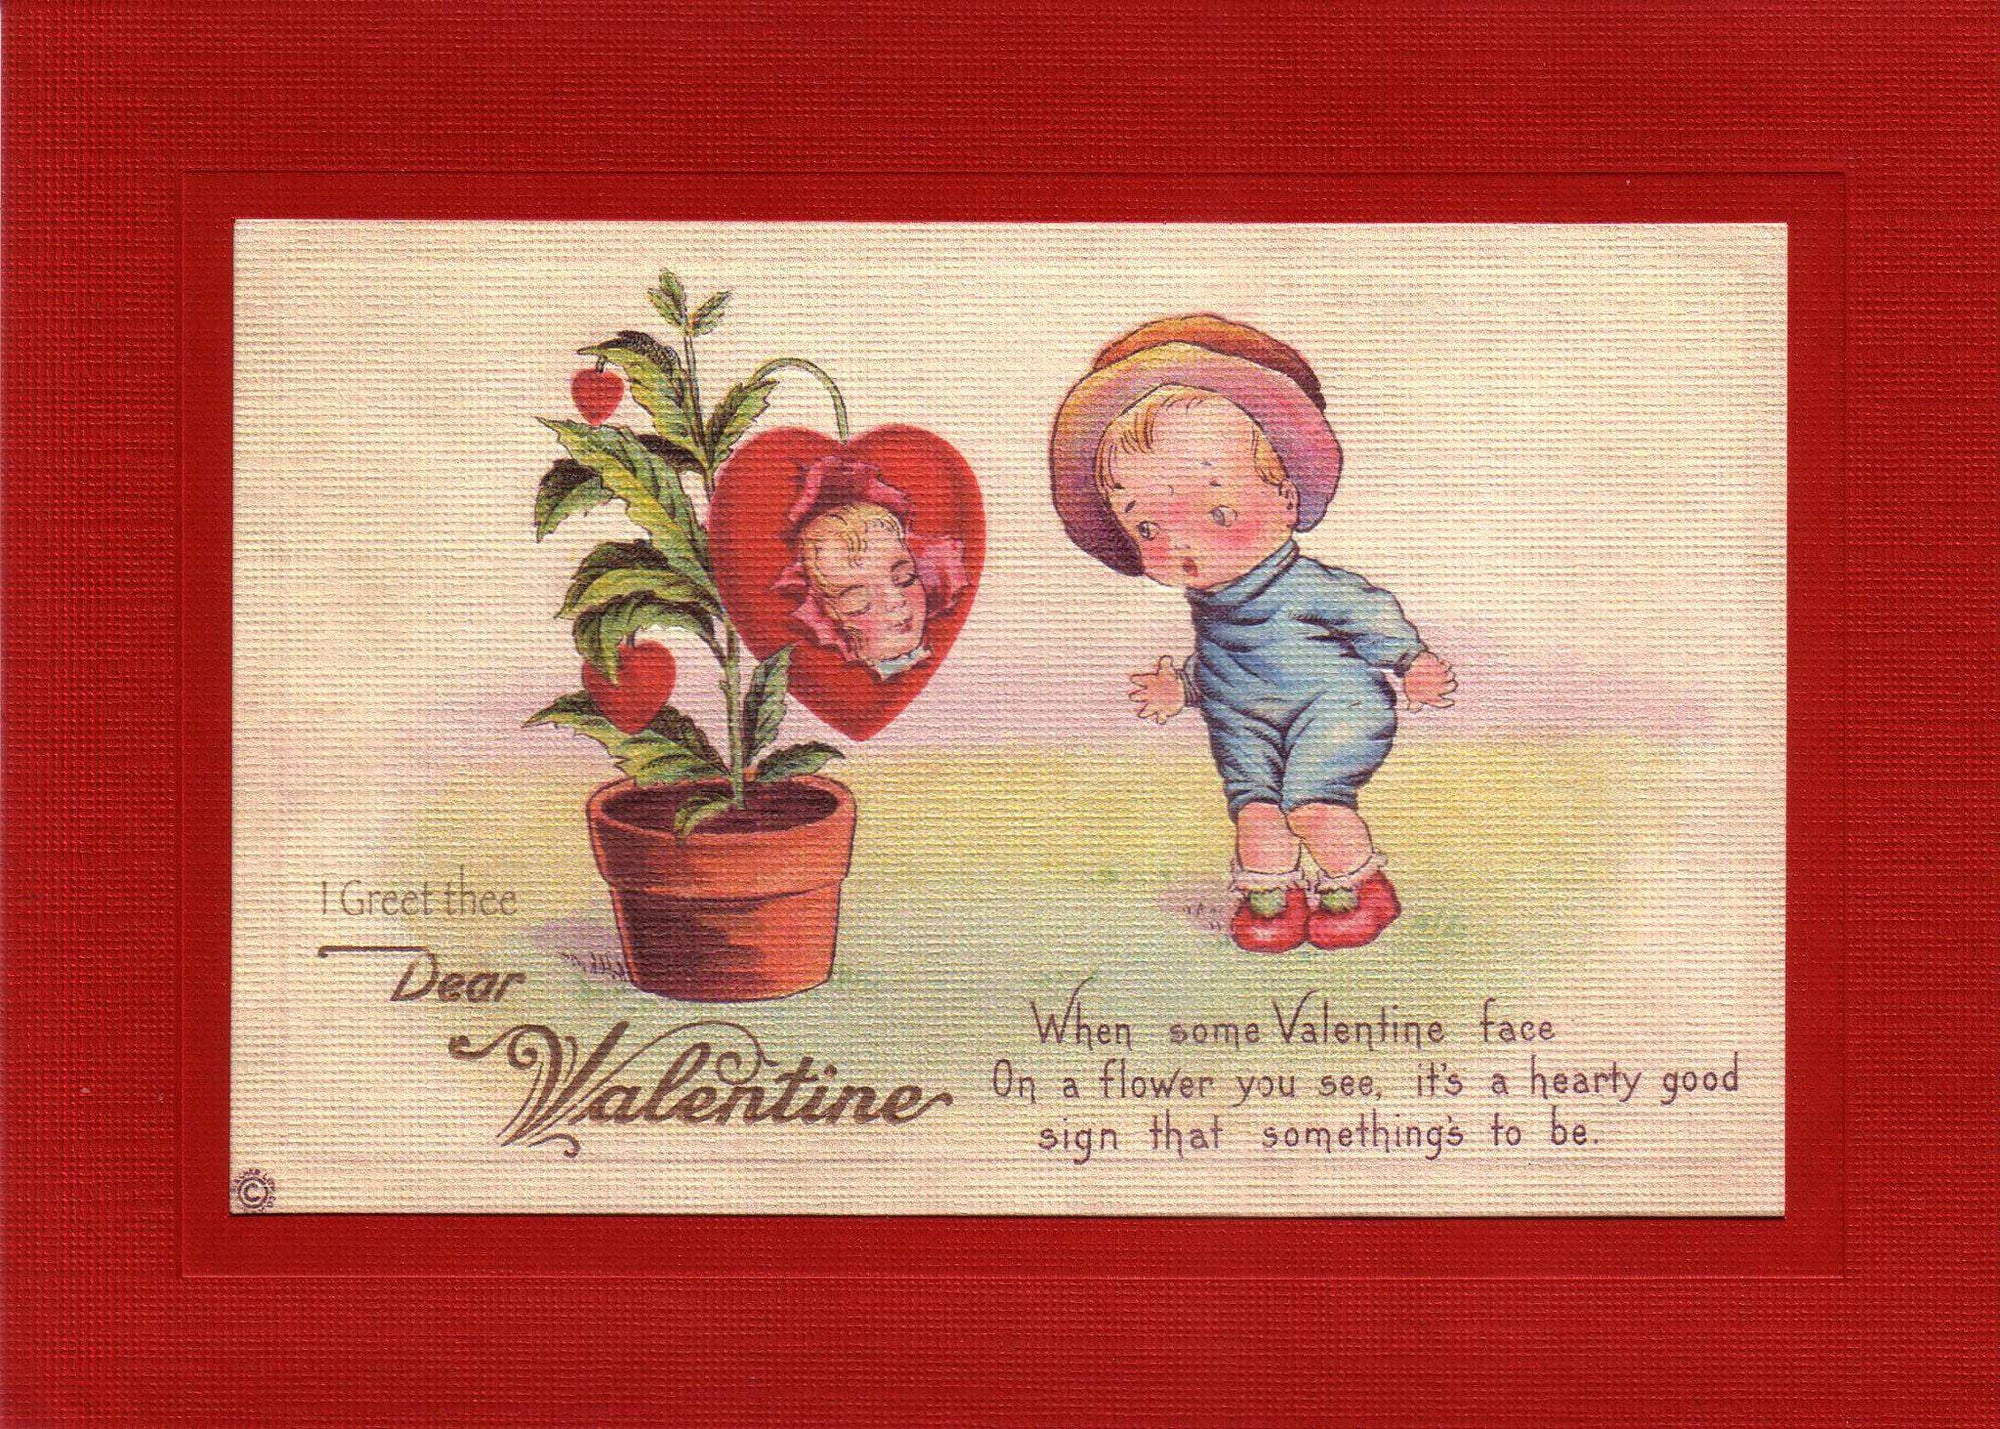 I Greet Thee Dear Valentine-Greetings from the Past-Plymouth Cards